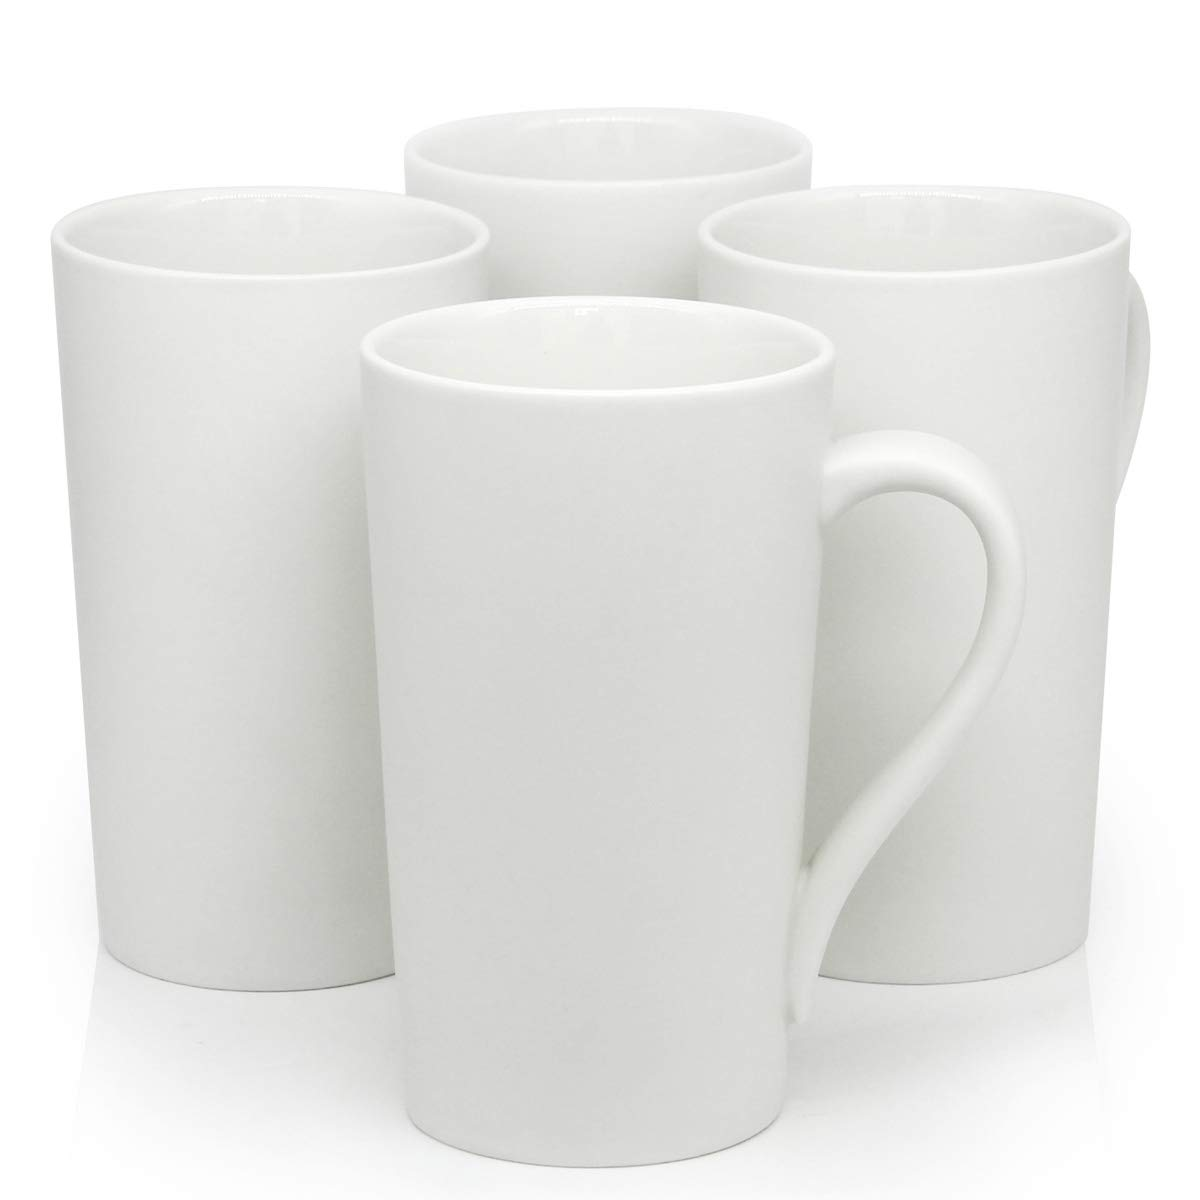 20 OZ Large Ceramic Coffee Mugs, Smilatte M007 Plain Blank Tall Ceramic Cup with Handle for Dad Men, Set of 4, White